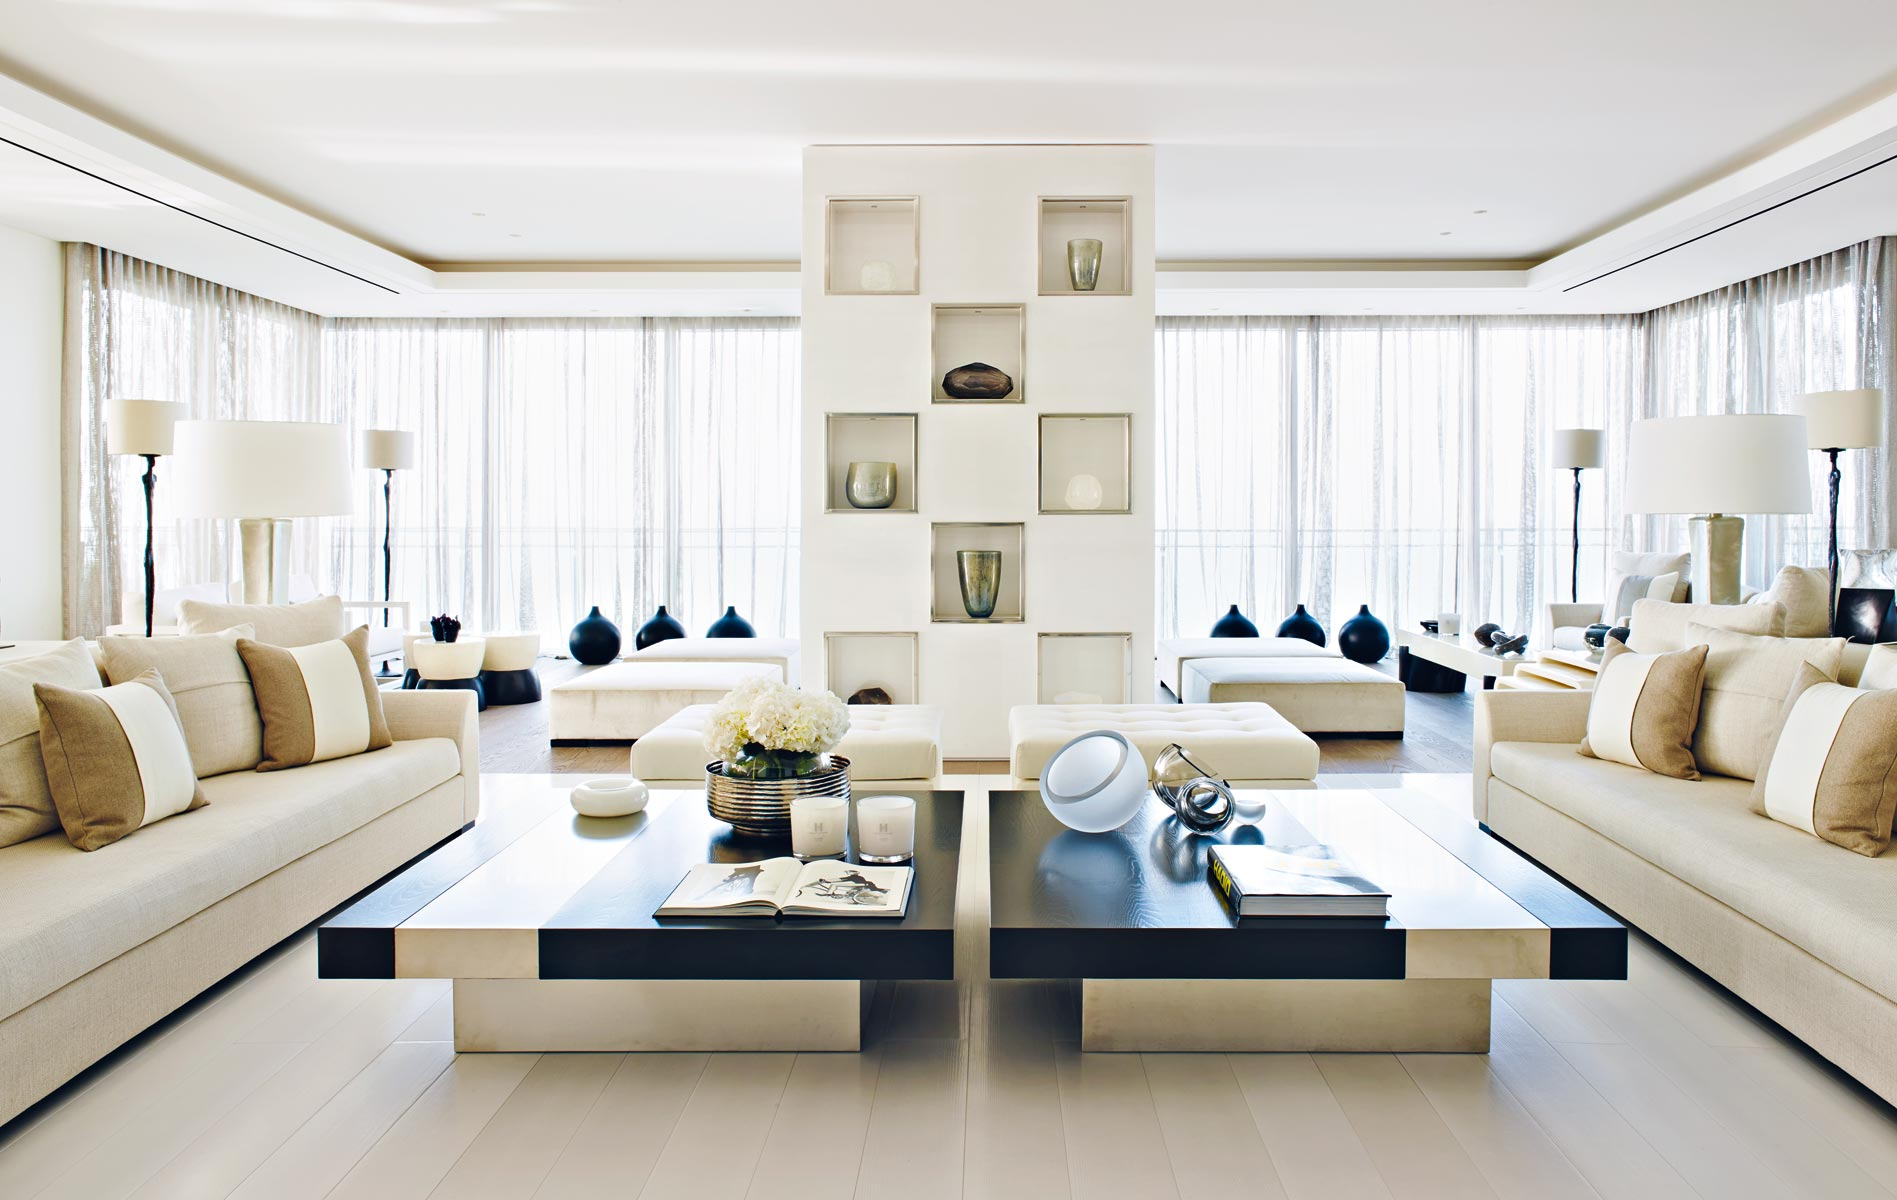 Top 10 kelly hoppen design ideas for Modern interior design ideas for living room 2015